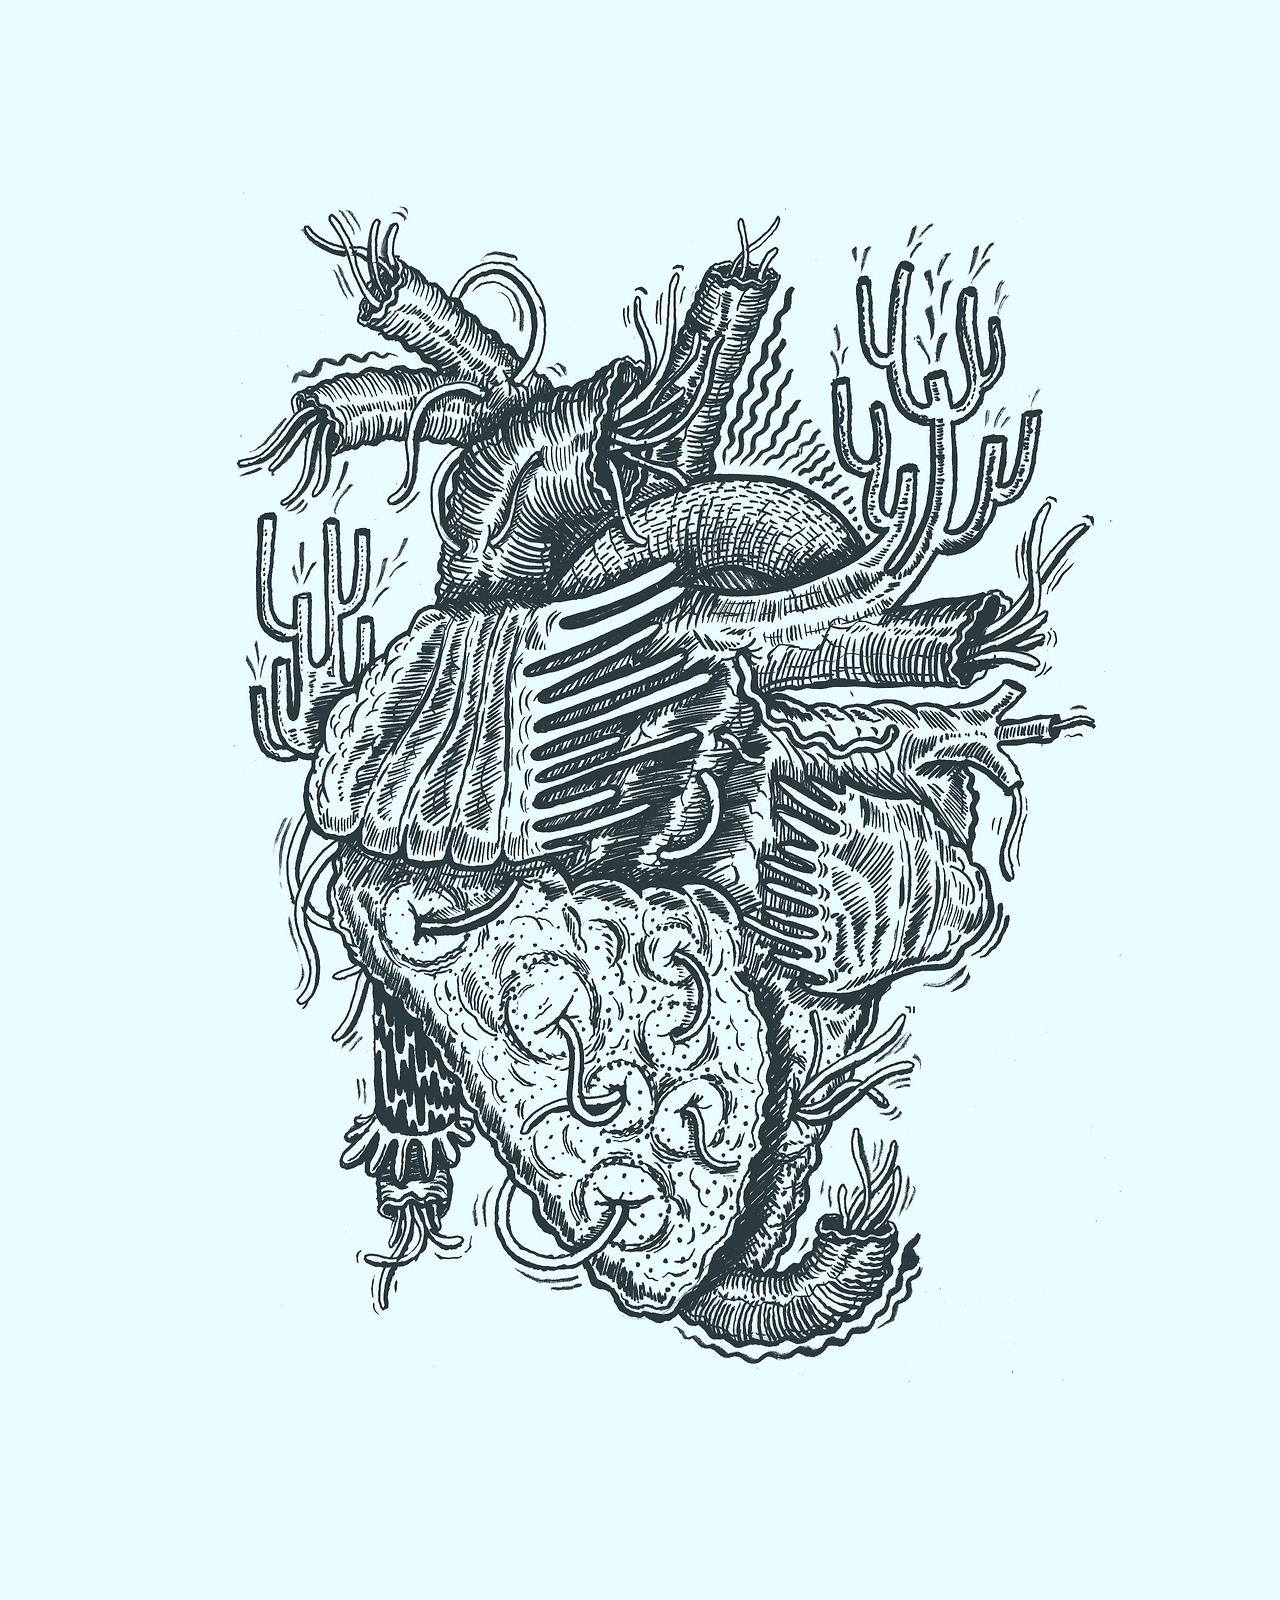 A sneak peek at a lil project me and  Erik Svetoft  are doing, where we are doing pseudoscientific illustrations, we are trying to compile a bunch of different areas of interest. This is a heart with heart worm, first round will be organs I believe. We may make a zine… Colors subject to change.